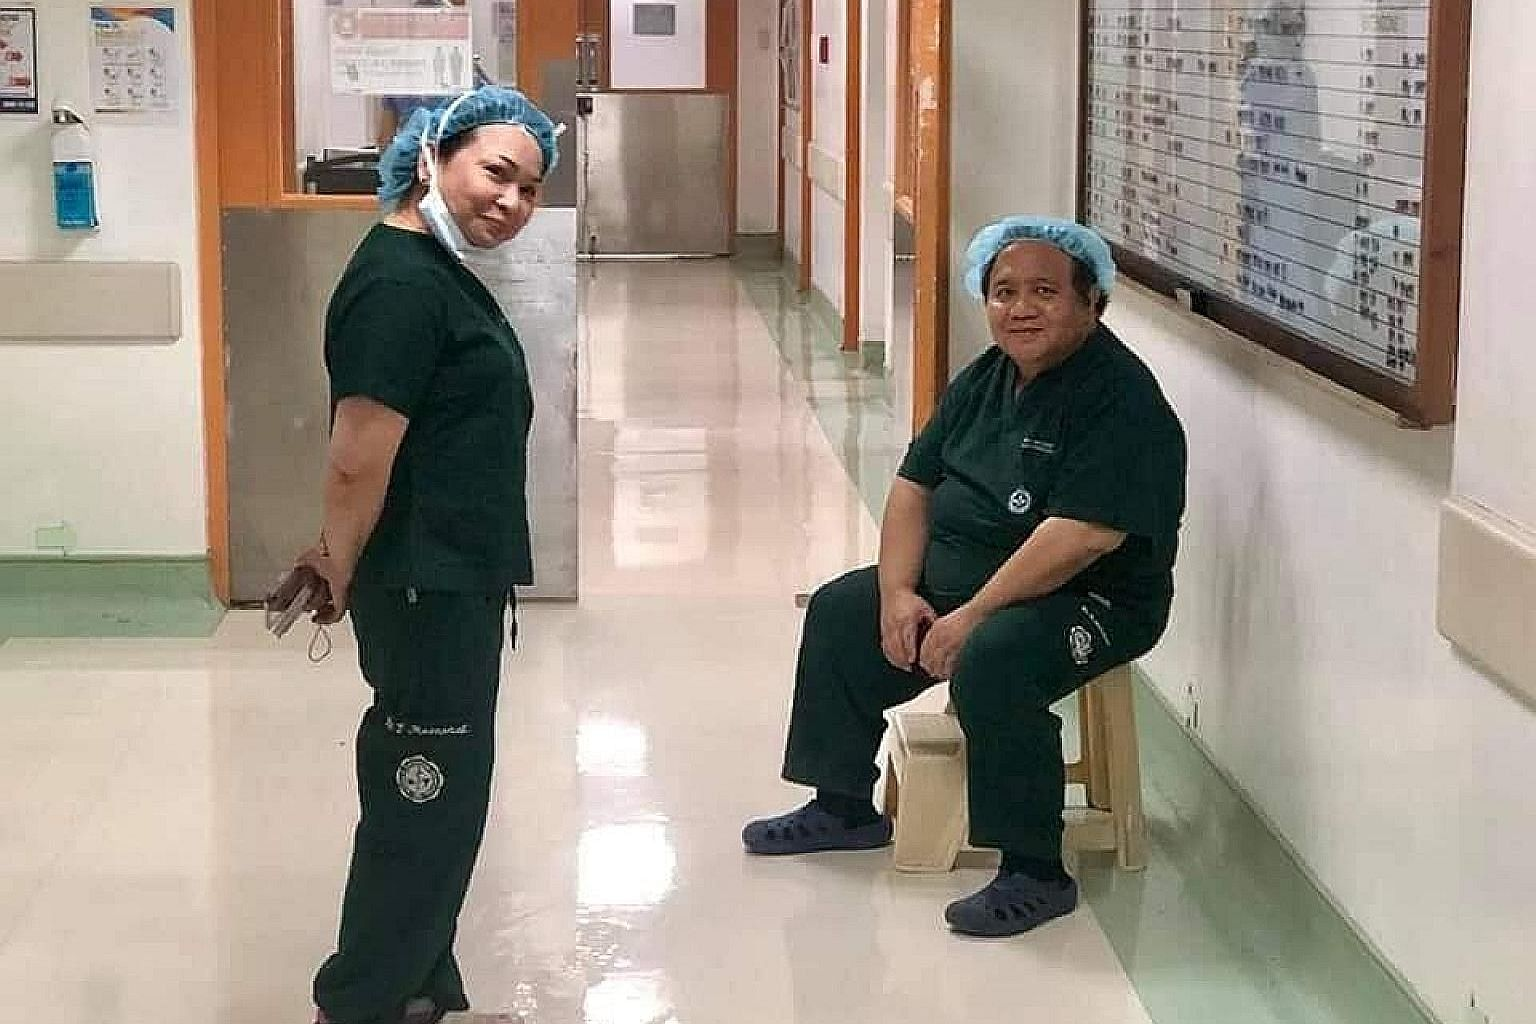 Dr Greg Macasaet and his wife, Evelyn, both anaesthesiologists at the Manila Doctors Hospital, got infected on the job. Dr Macasaet died on Sunday while his wife is still fighting for her life.